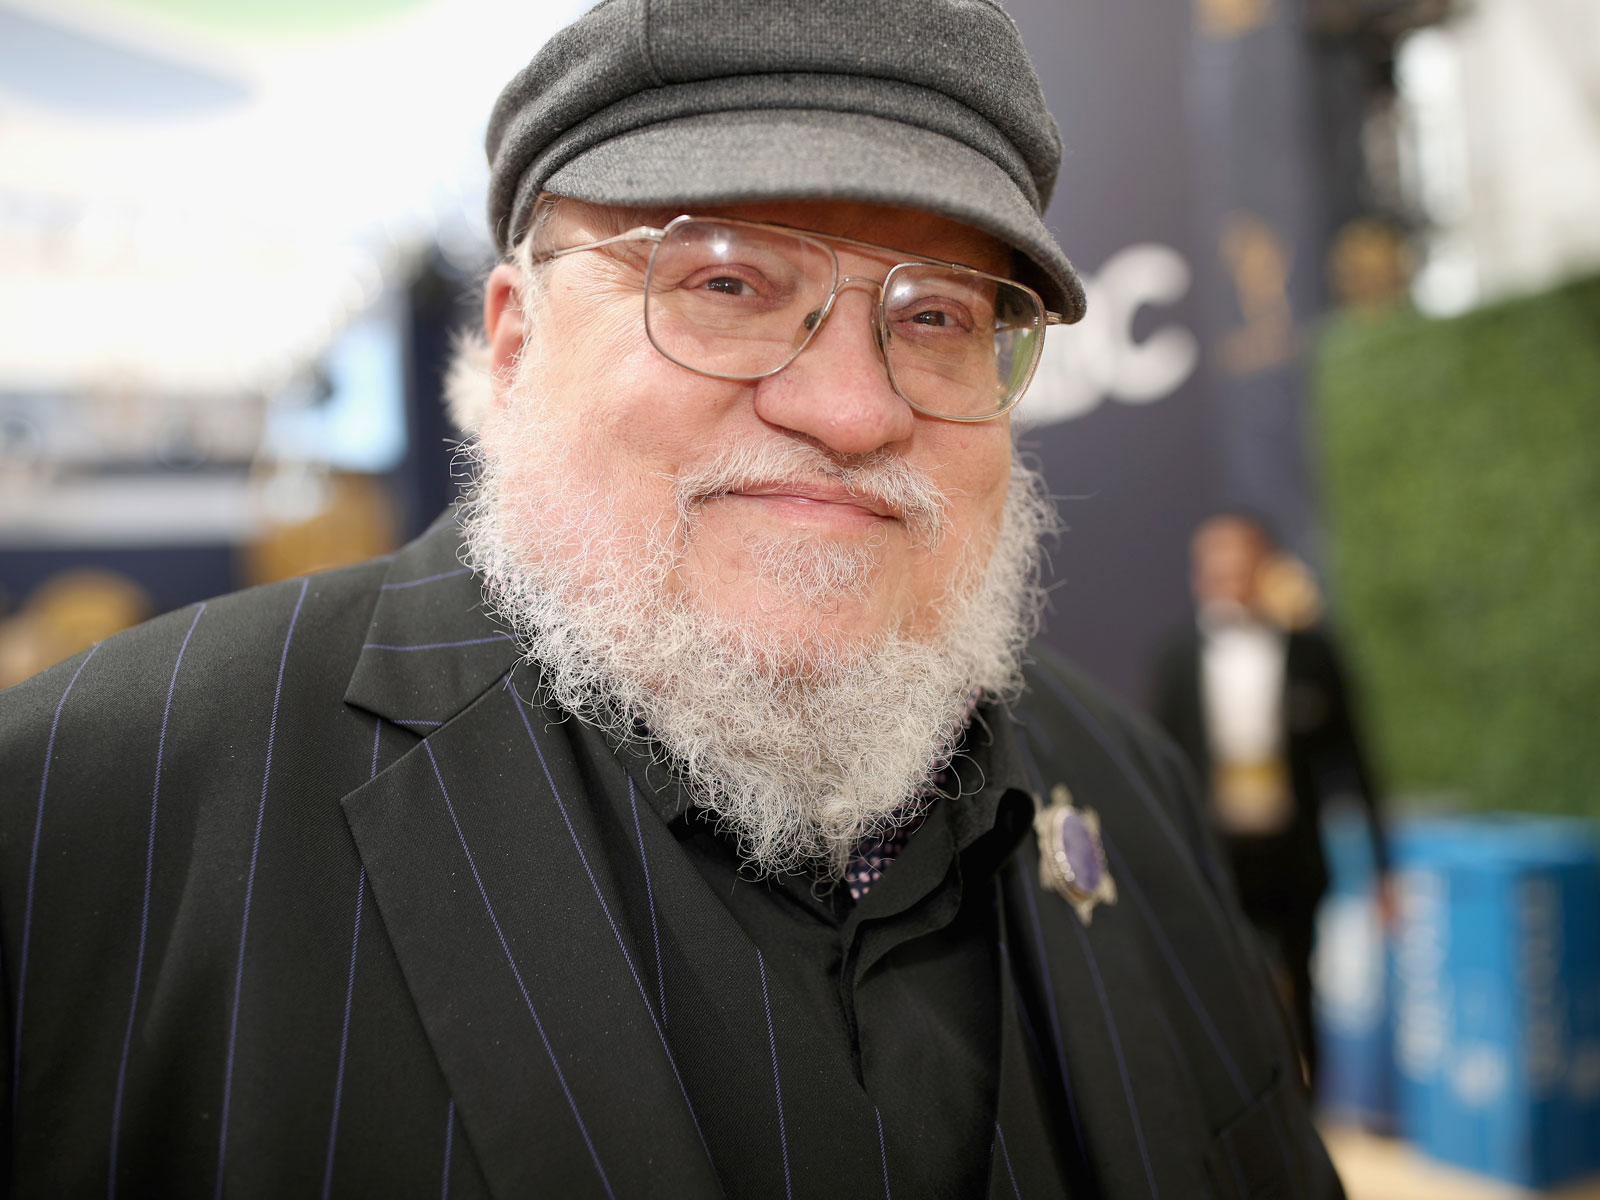 Watch George R.R. Martin's Guide to NYC Pizza